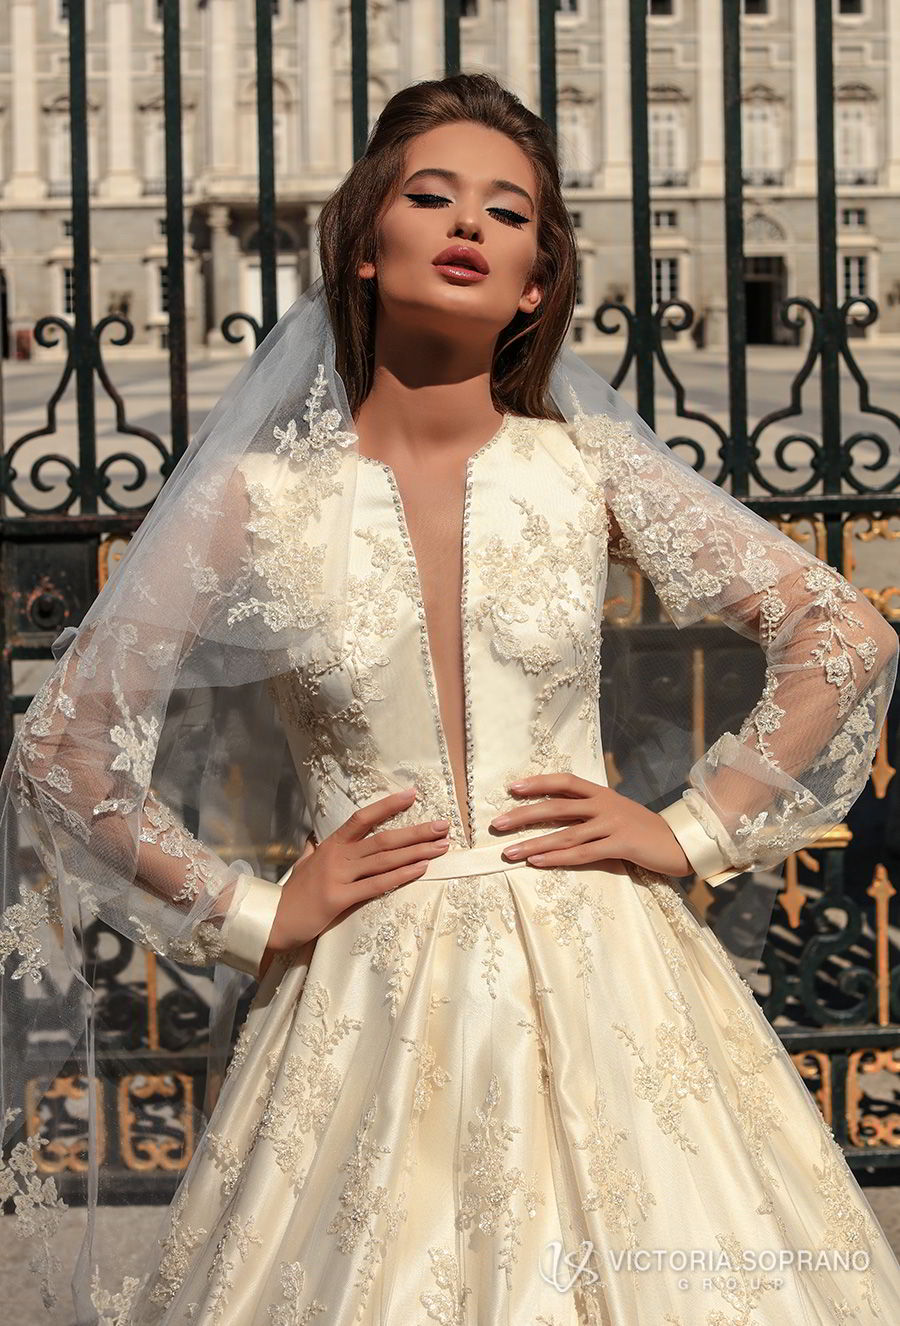 victoria soprano 2018 bridal long bishop sleeves deep plunging v neck full embellishment princess ball gown a line wedding dress covered lace back chapel train (blair) zv